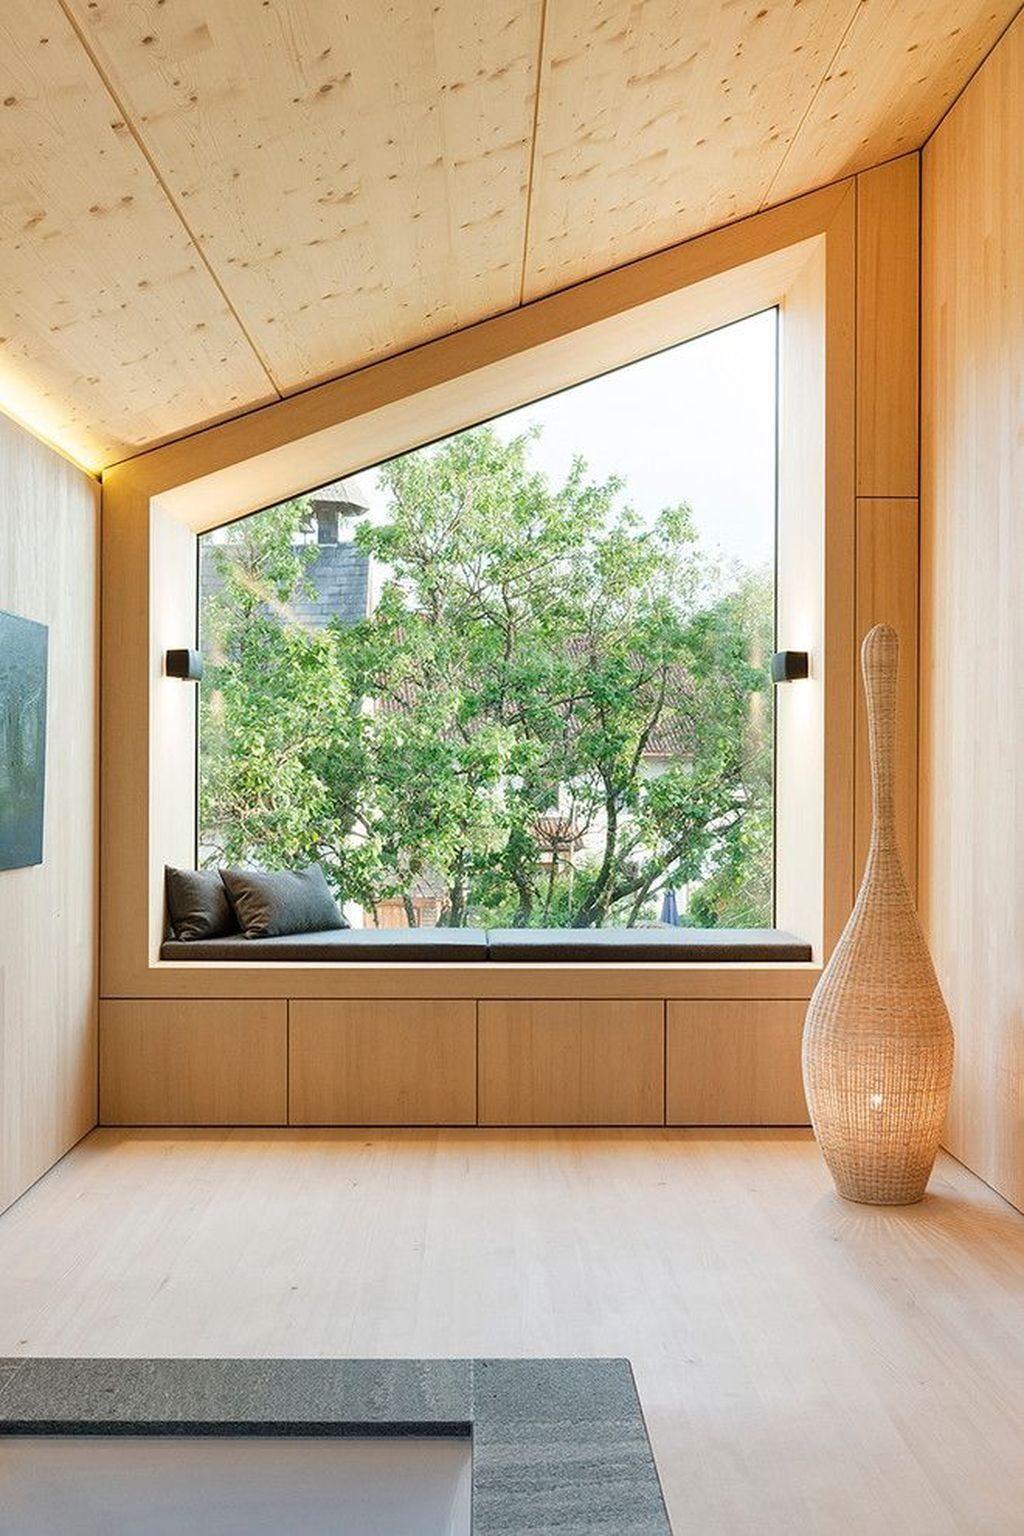 30 Amazing Window Seat Ideas For A Cozy Home In 2020